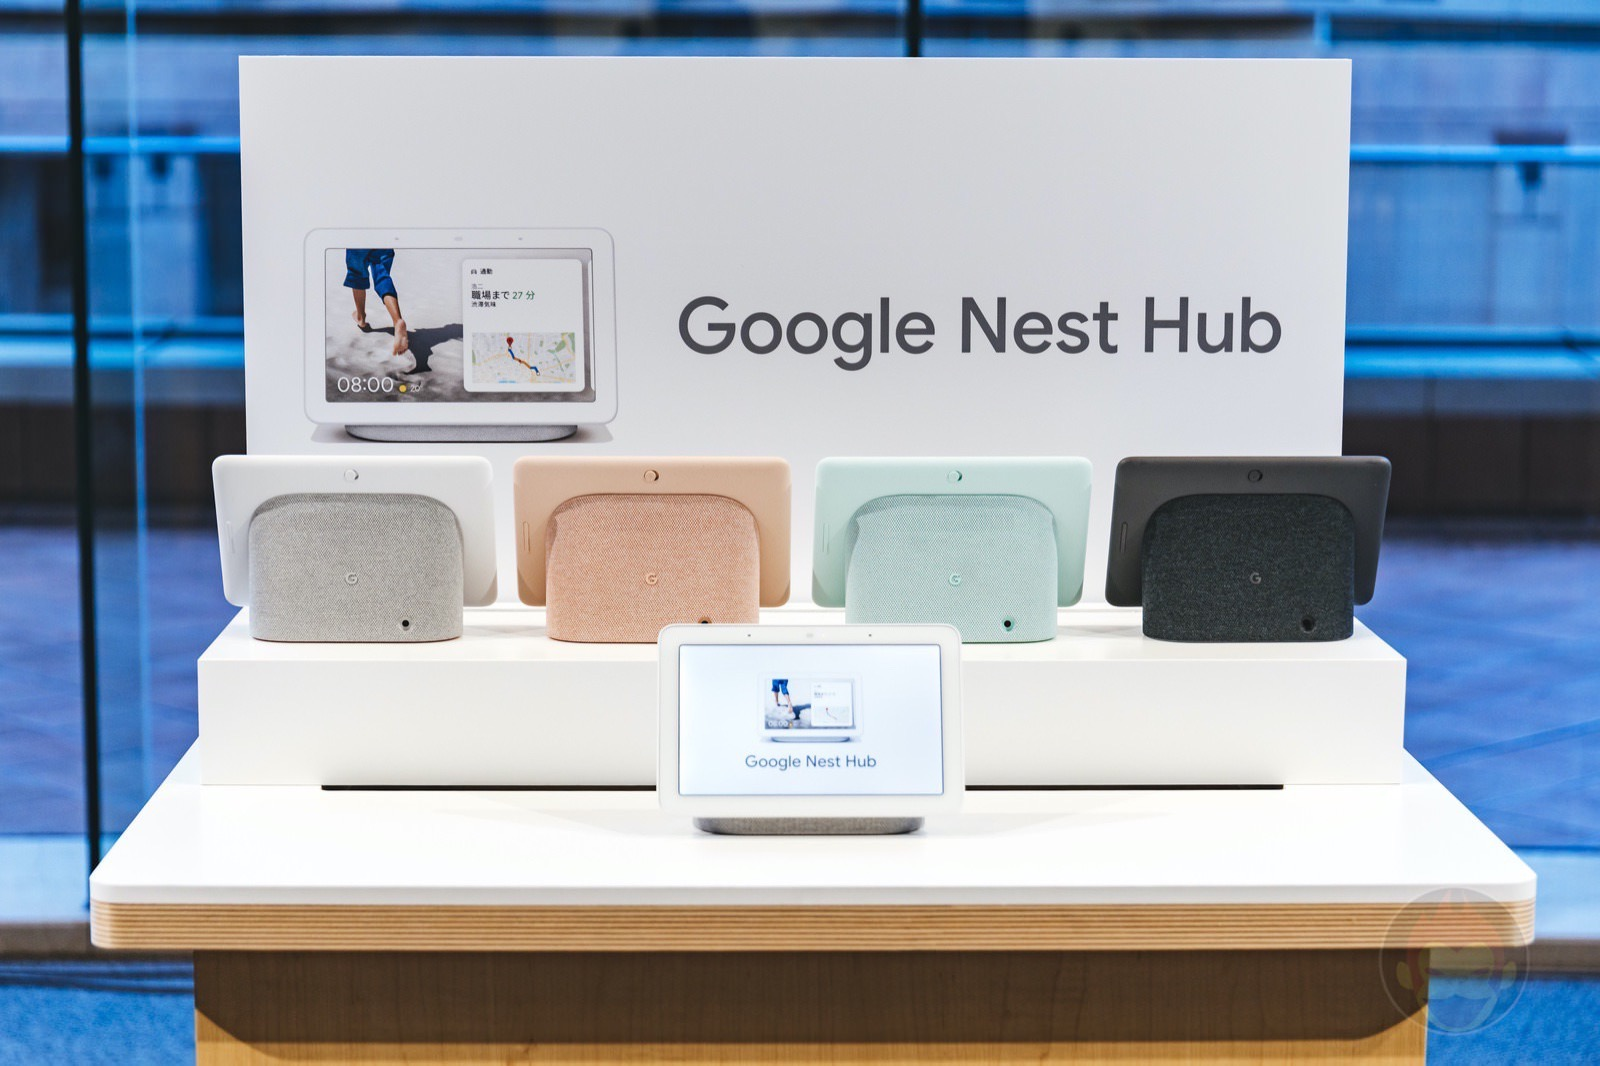 Google-Nest-Hub-Hands-On-08.jpg